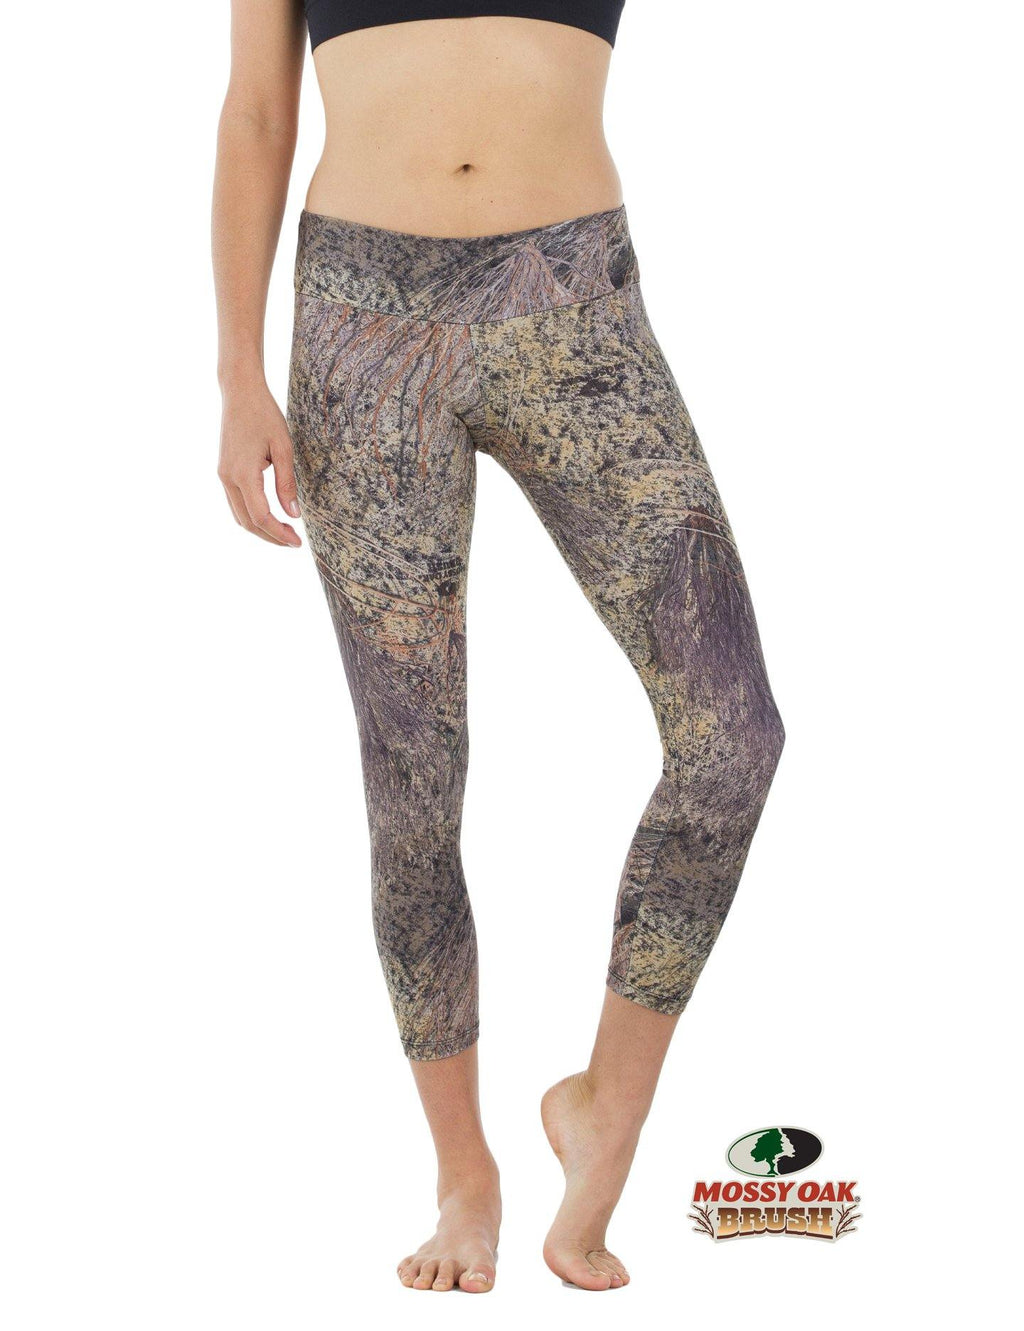 Apsara Leggings Low Waist Cropped, Mossy Oak Brush - Apsara Style